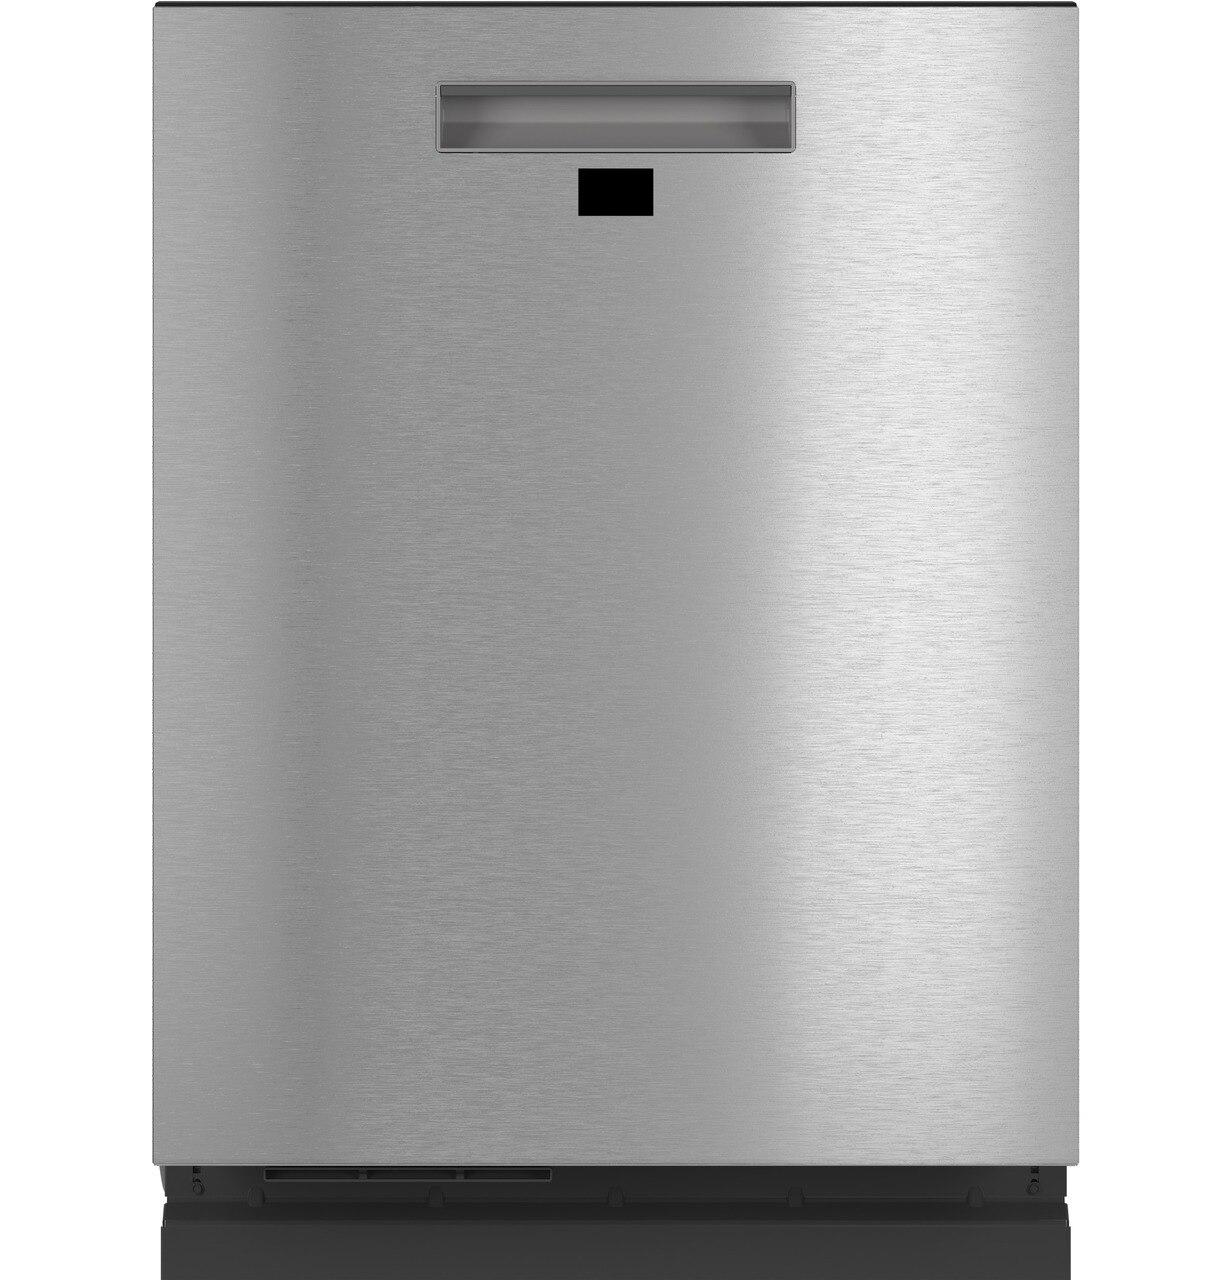 CafeSmart Stainless Steel Interior Dishwasher With Sanitize And Ultra Wash & Dual Convection Ultra Dry In Platinum Glass